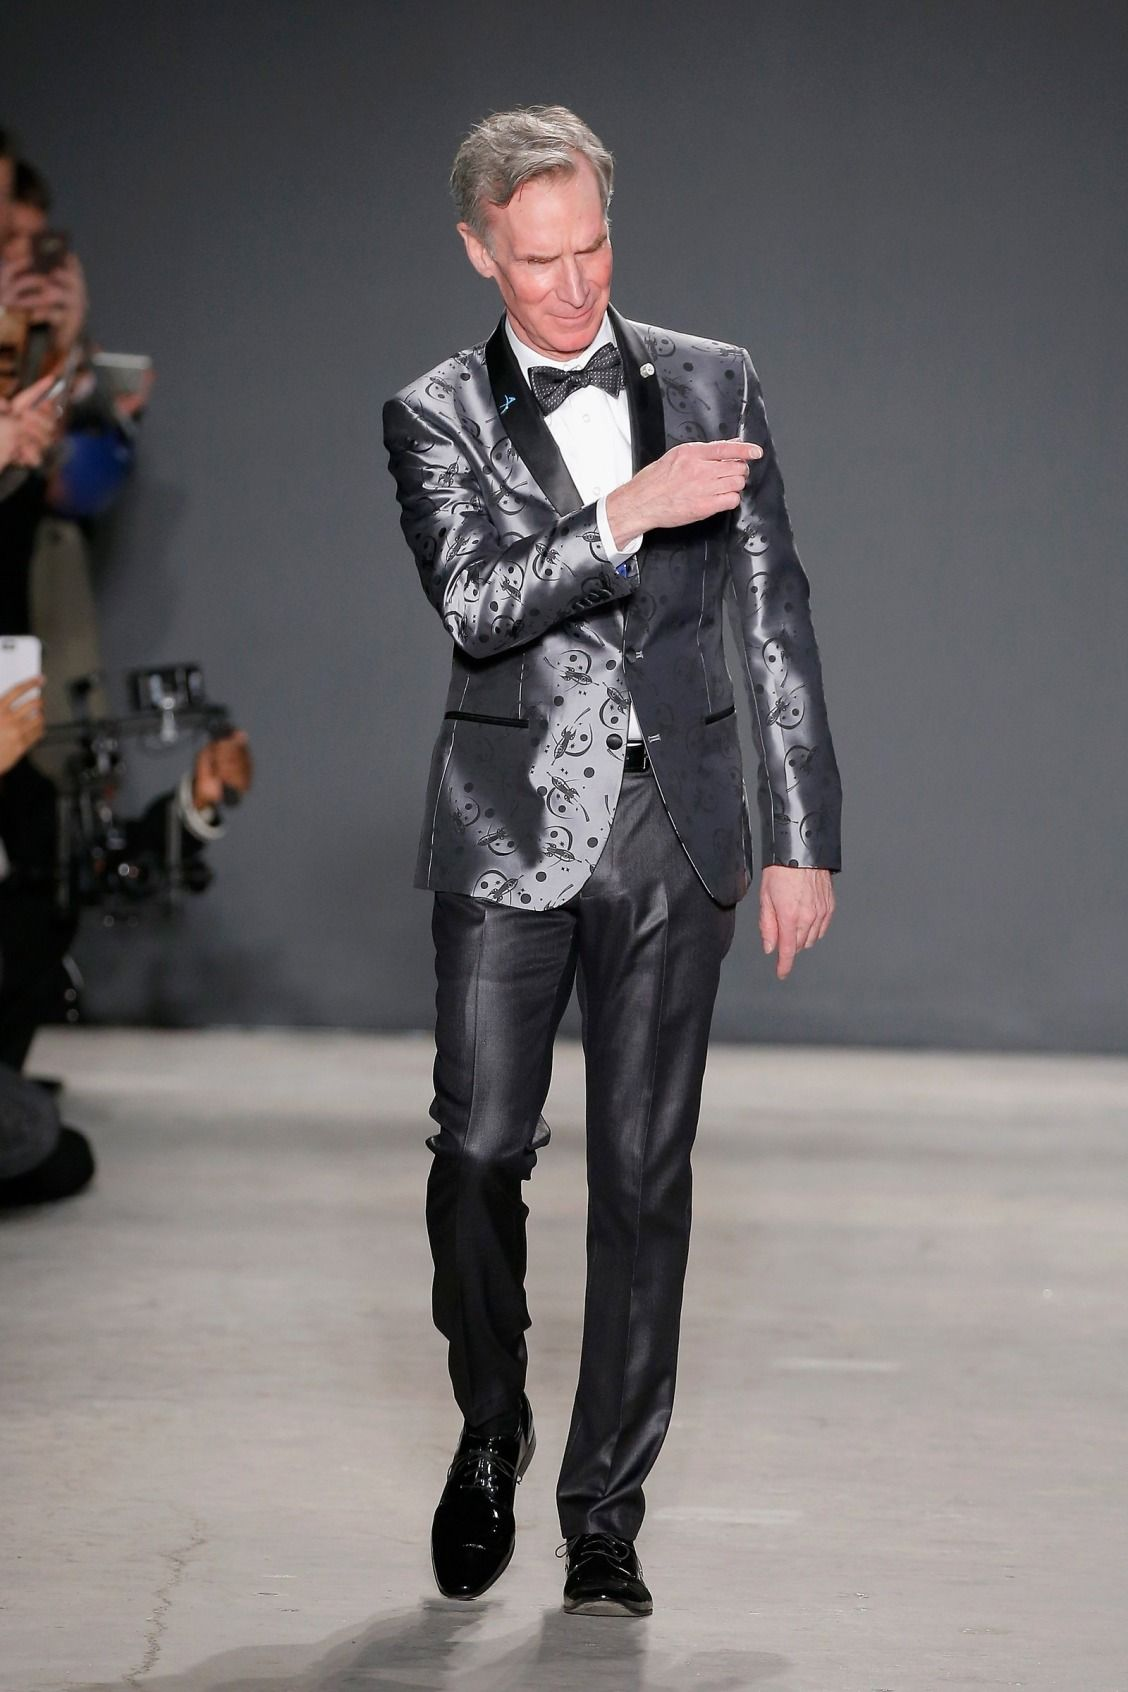 Bill Nye the Science Guy Talks Bow Ties, Skinny Jeans, and